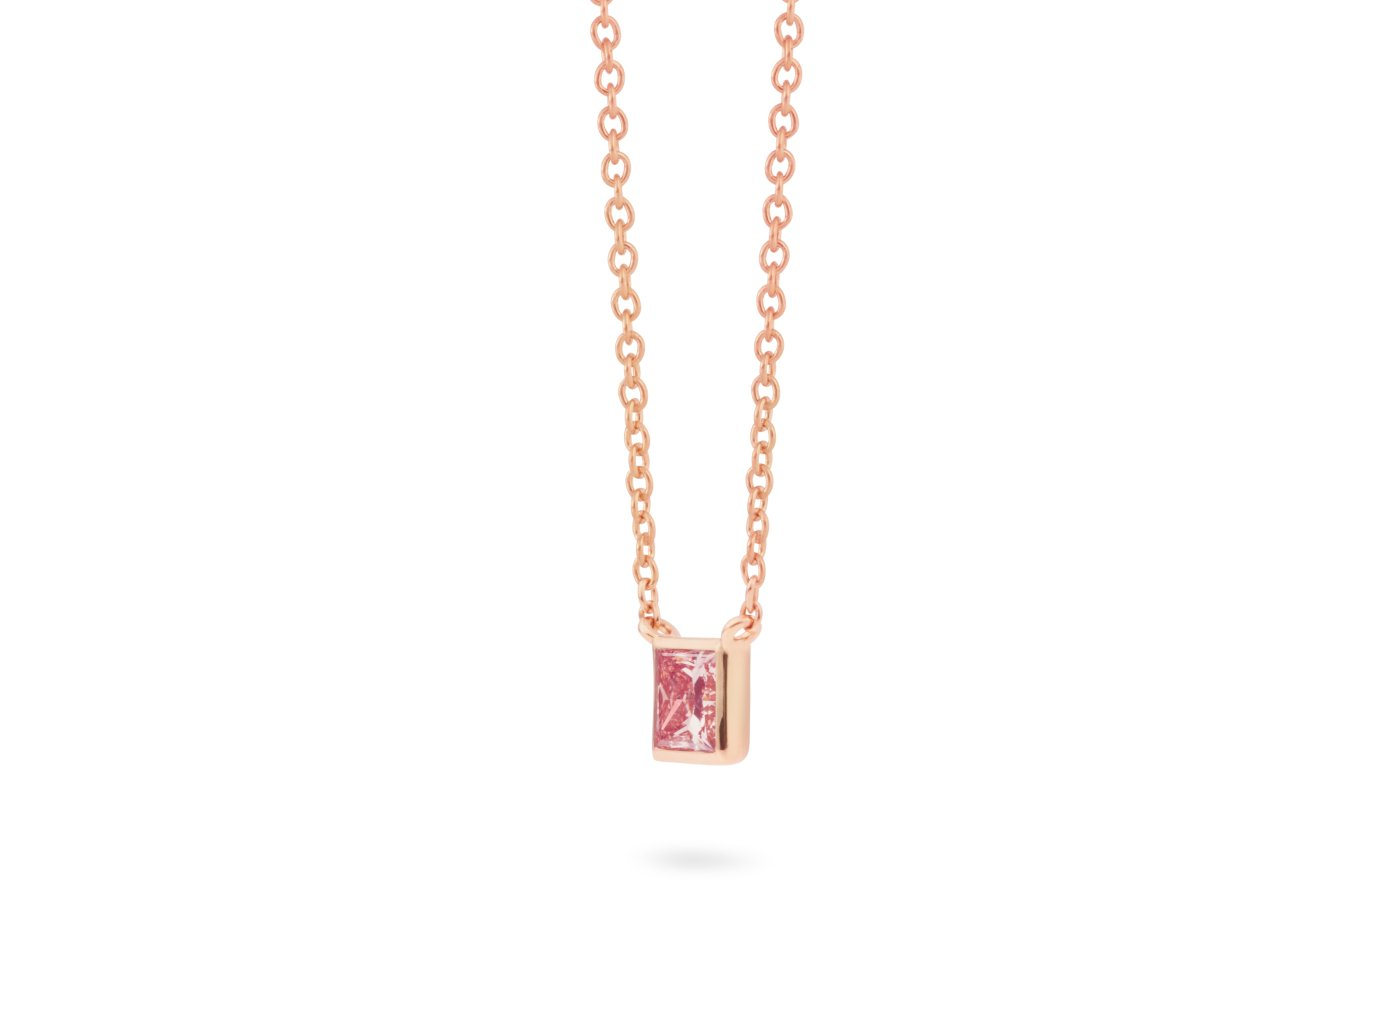 Side view of Princess Bezel 1/2 carat pendant with pink diamond